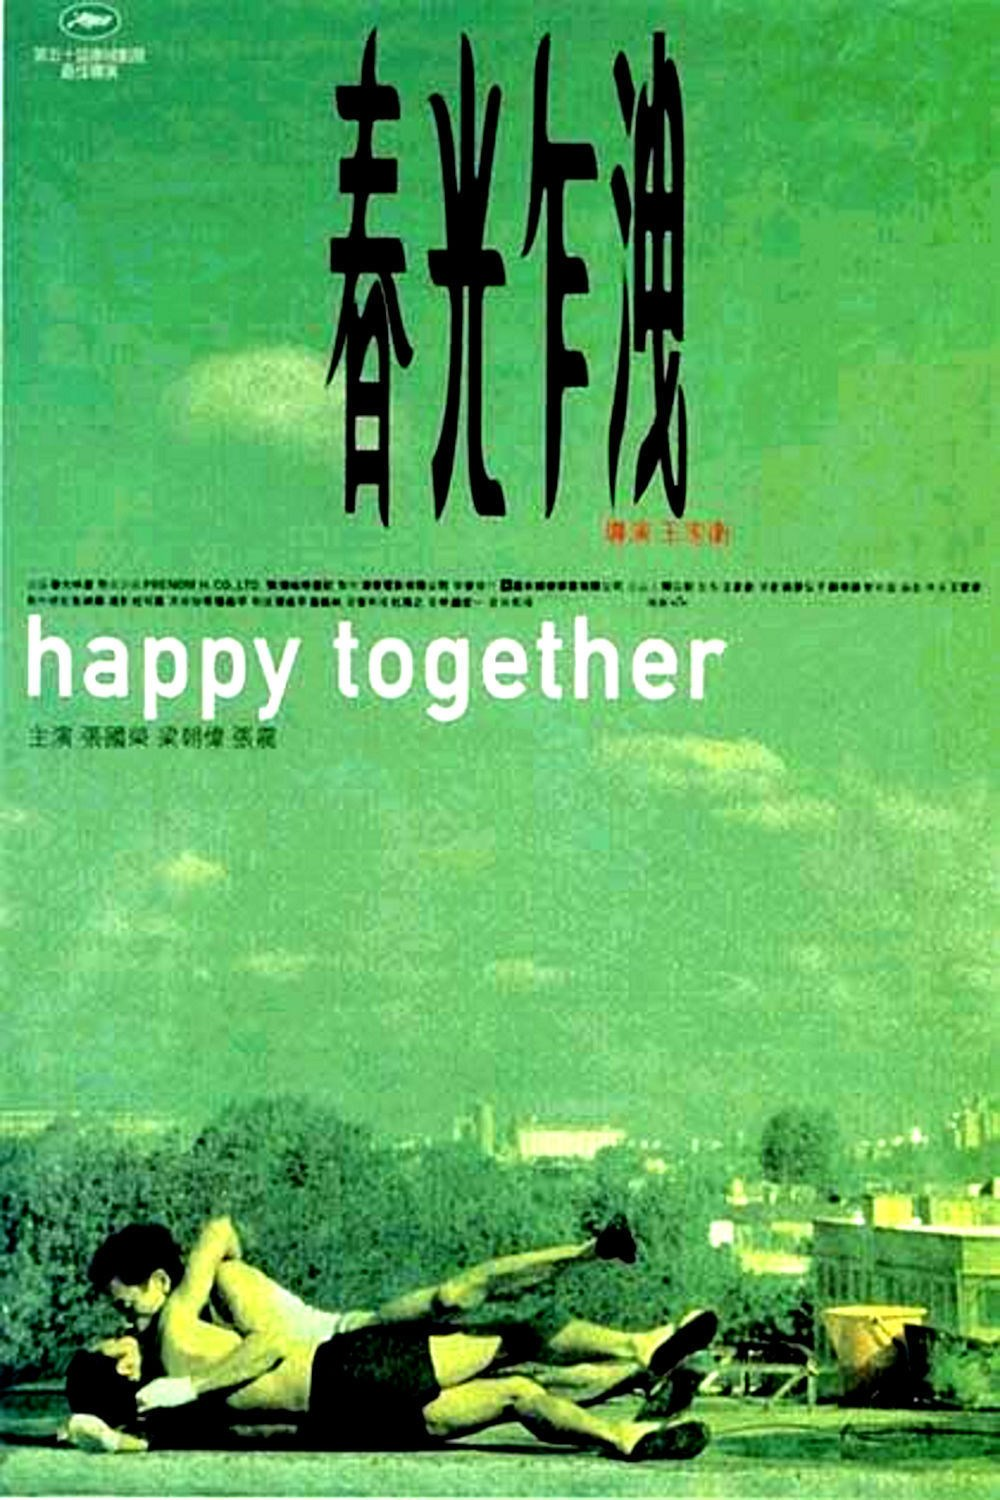 Download Happy Together 1997 720p BluRay x264 anoXmous Torrent